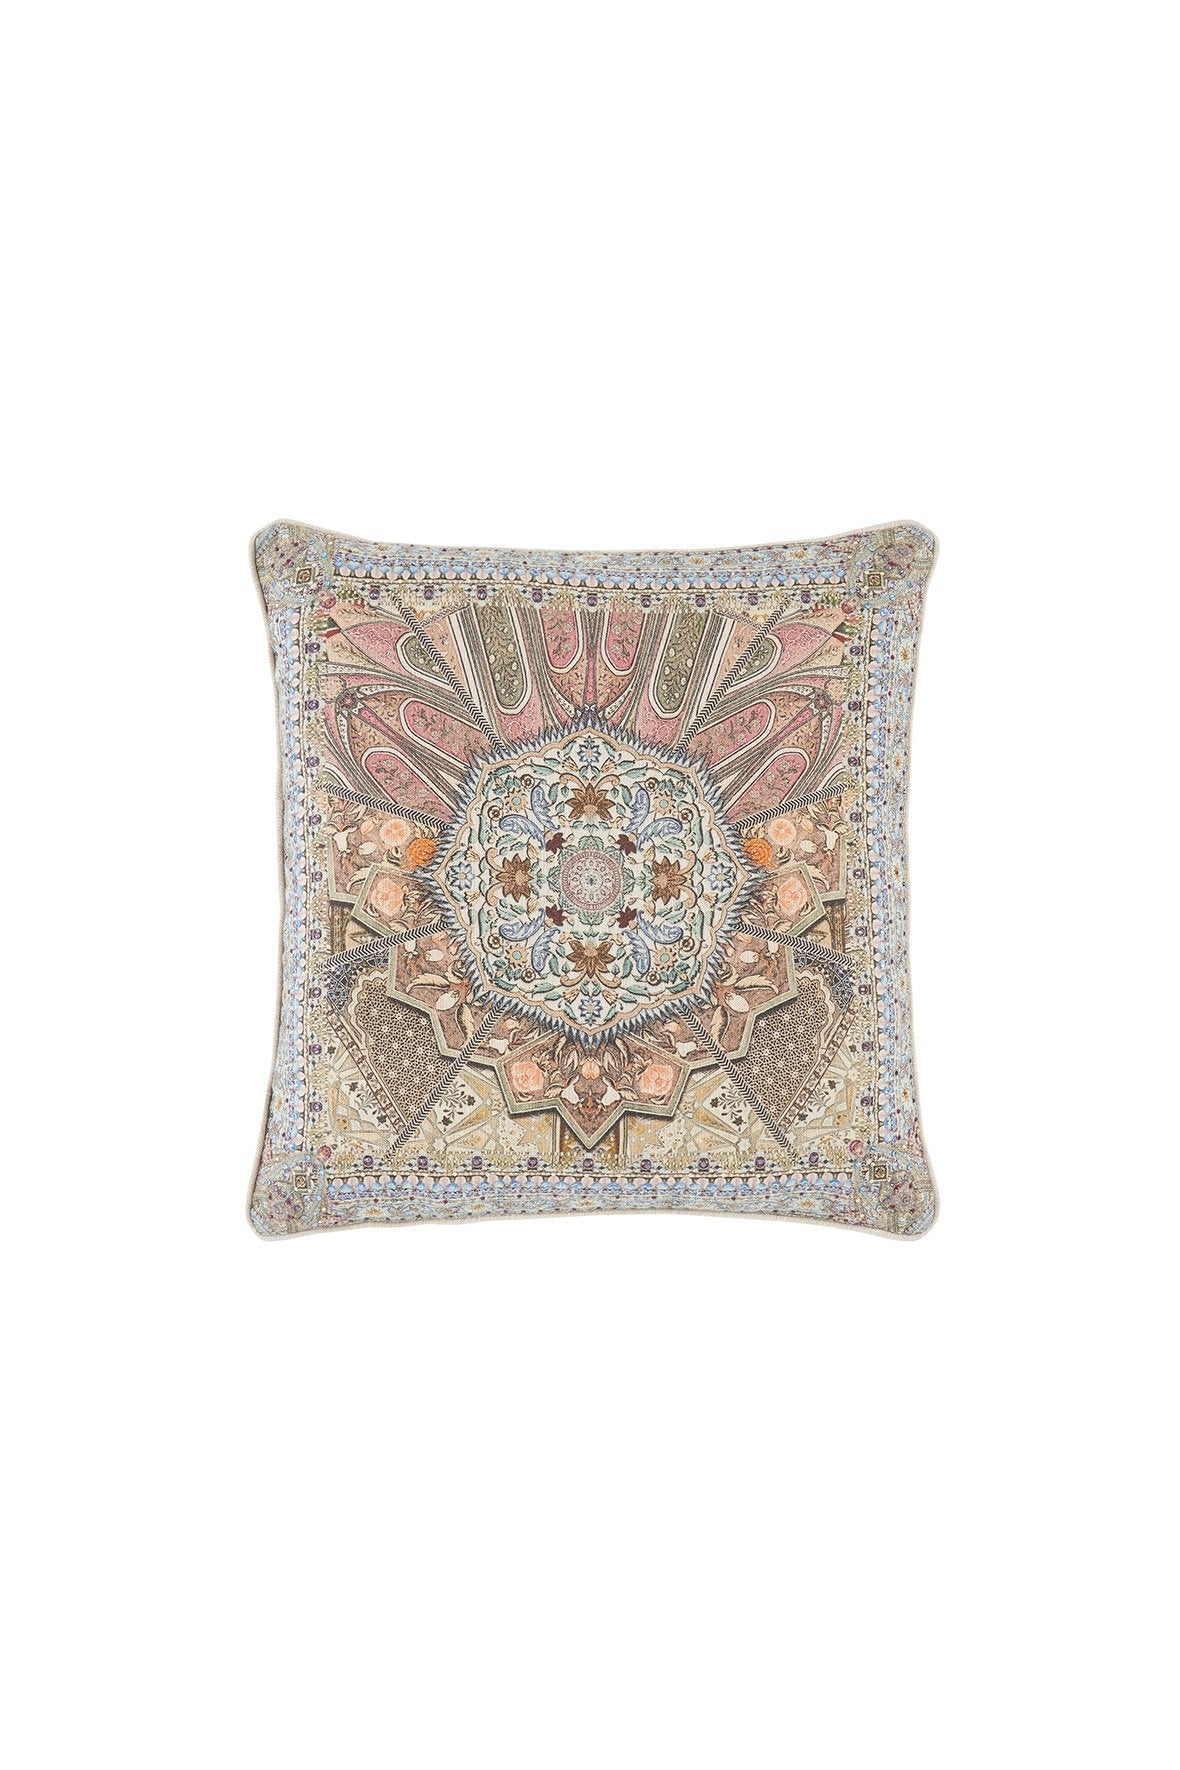 SOUL SISTERS SMALL SQUARE CUSHION